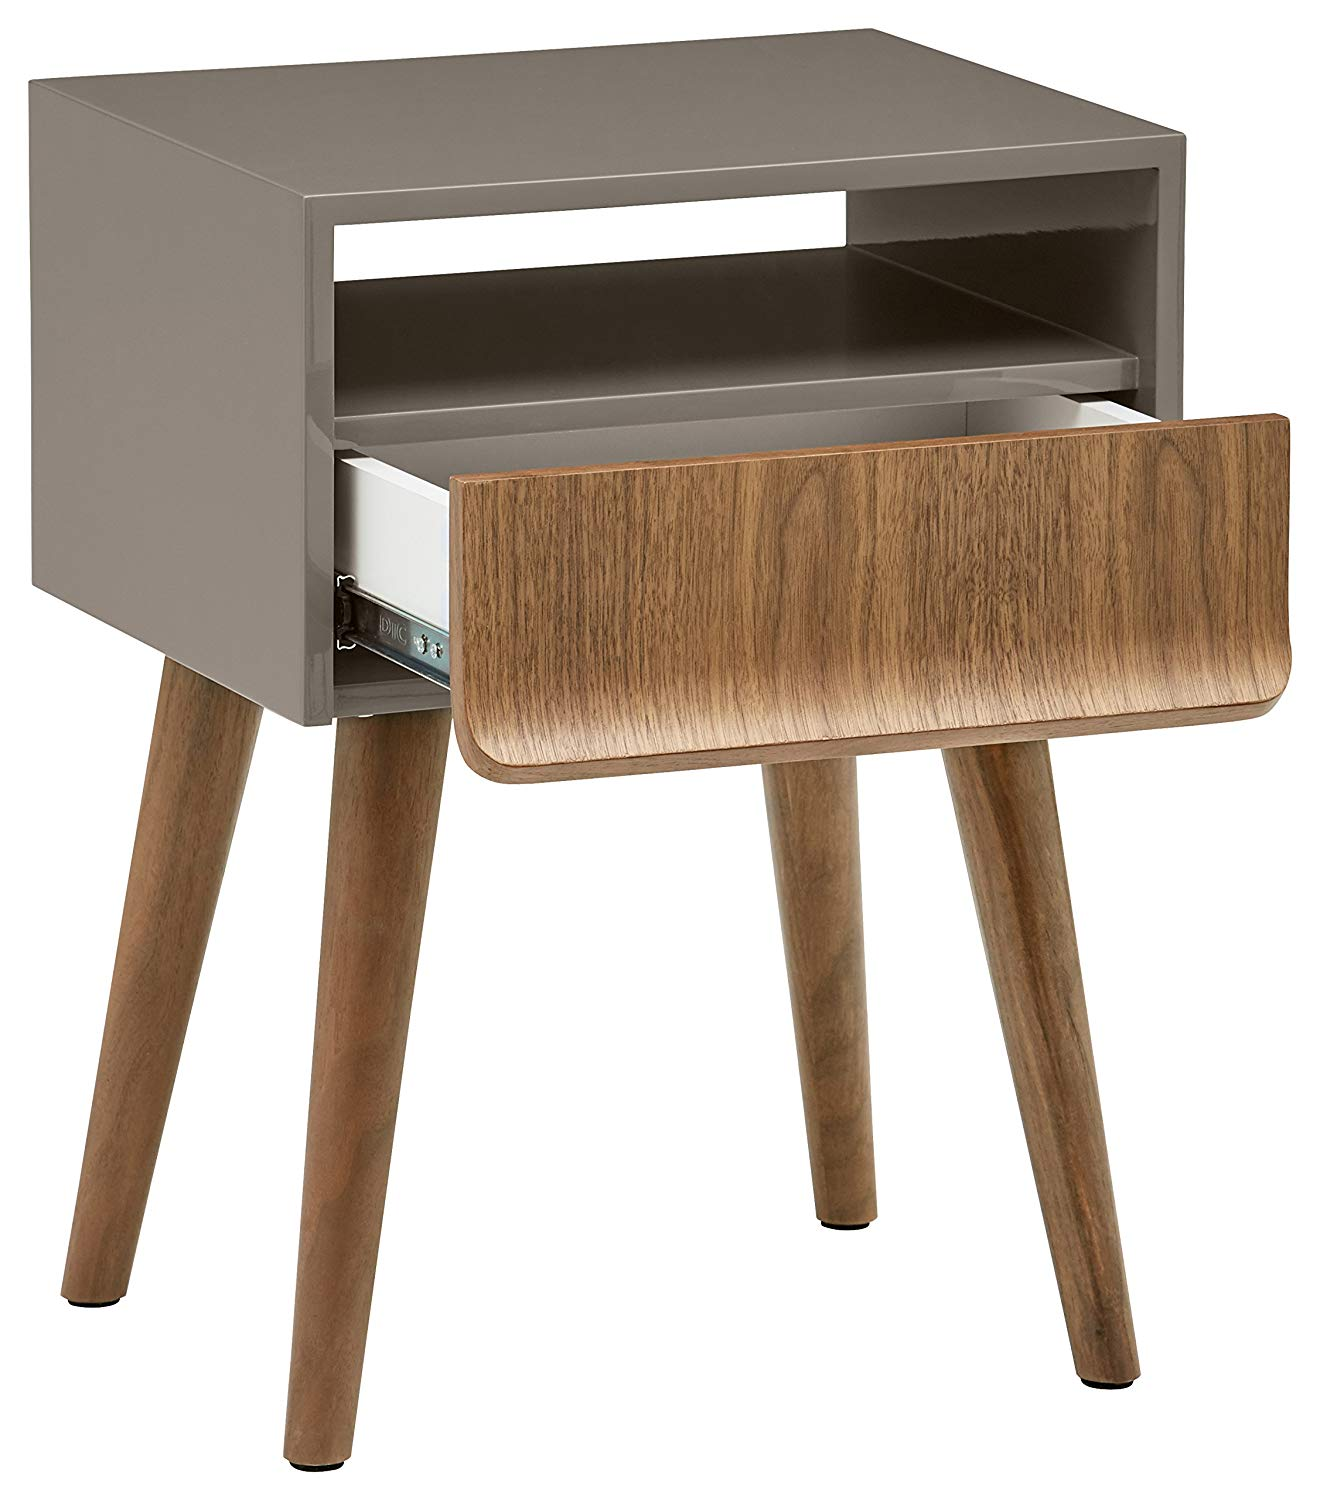 rivet mid century lacquer side table grey and walnut zebra accent kitchen dining white bedside lockers home goods small iron cherry wood dinner black counter height teal coffee